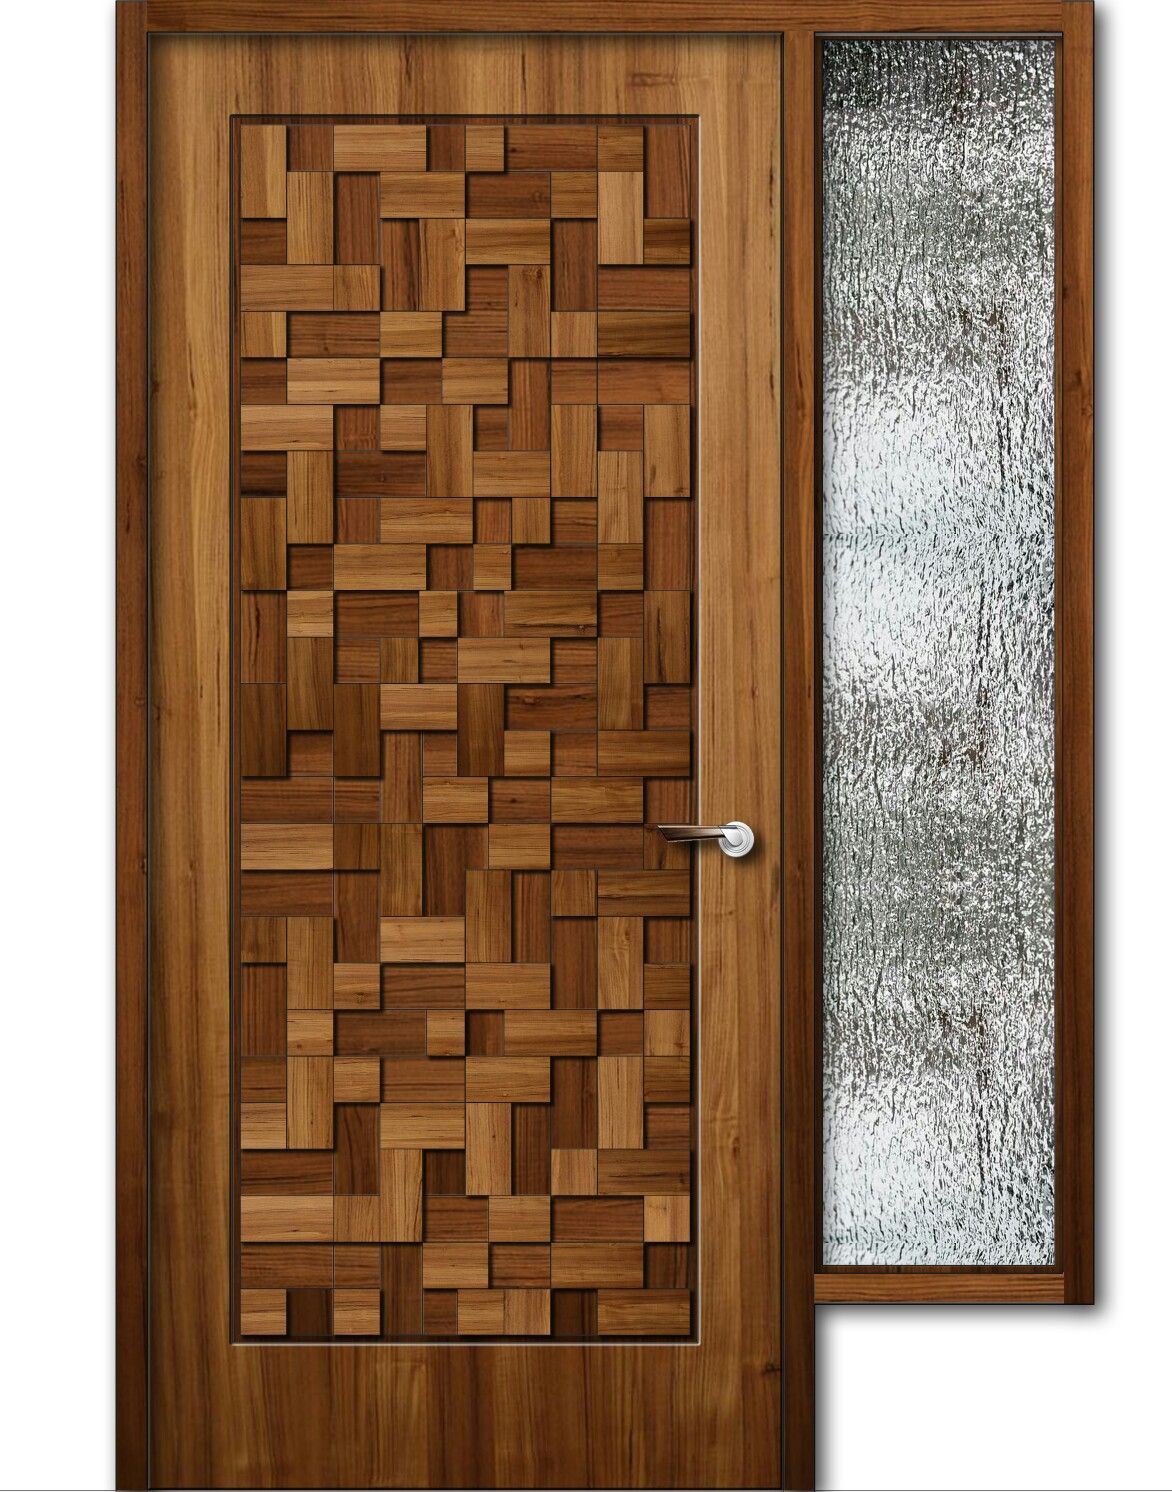 Teak wood finish wooden door with window 8feet height for Door and window design